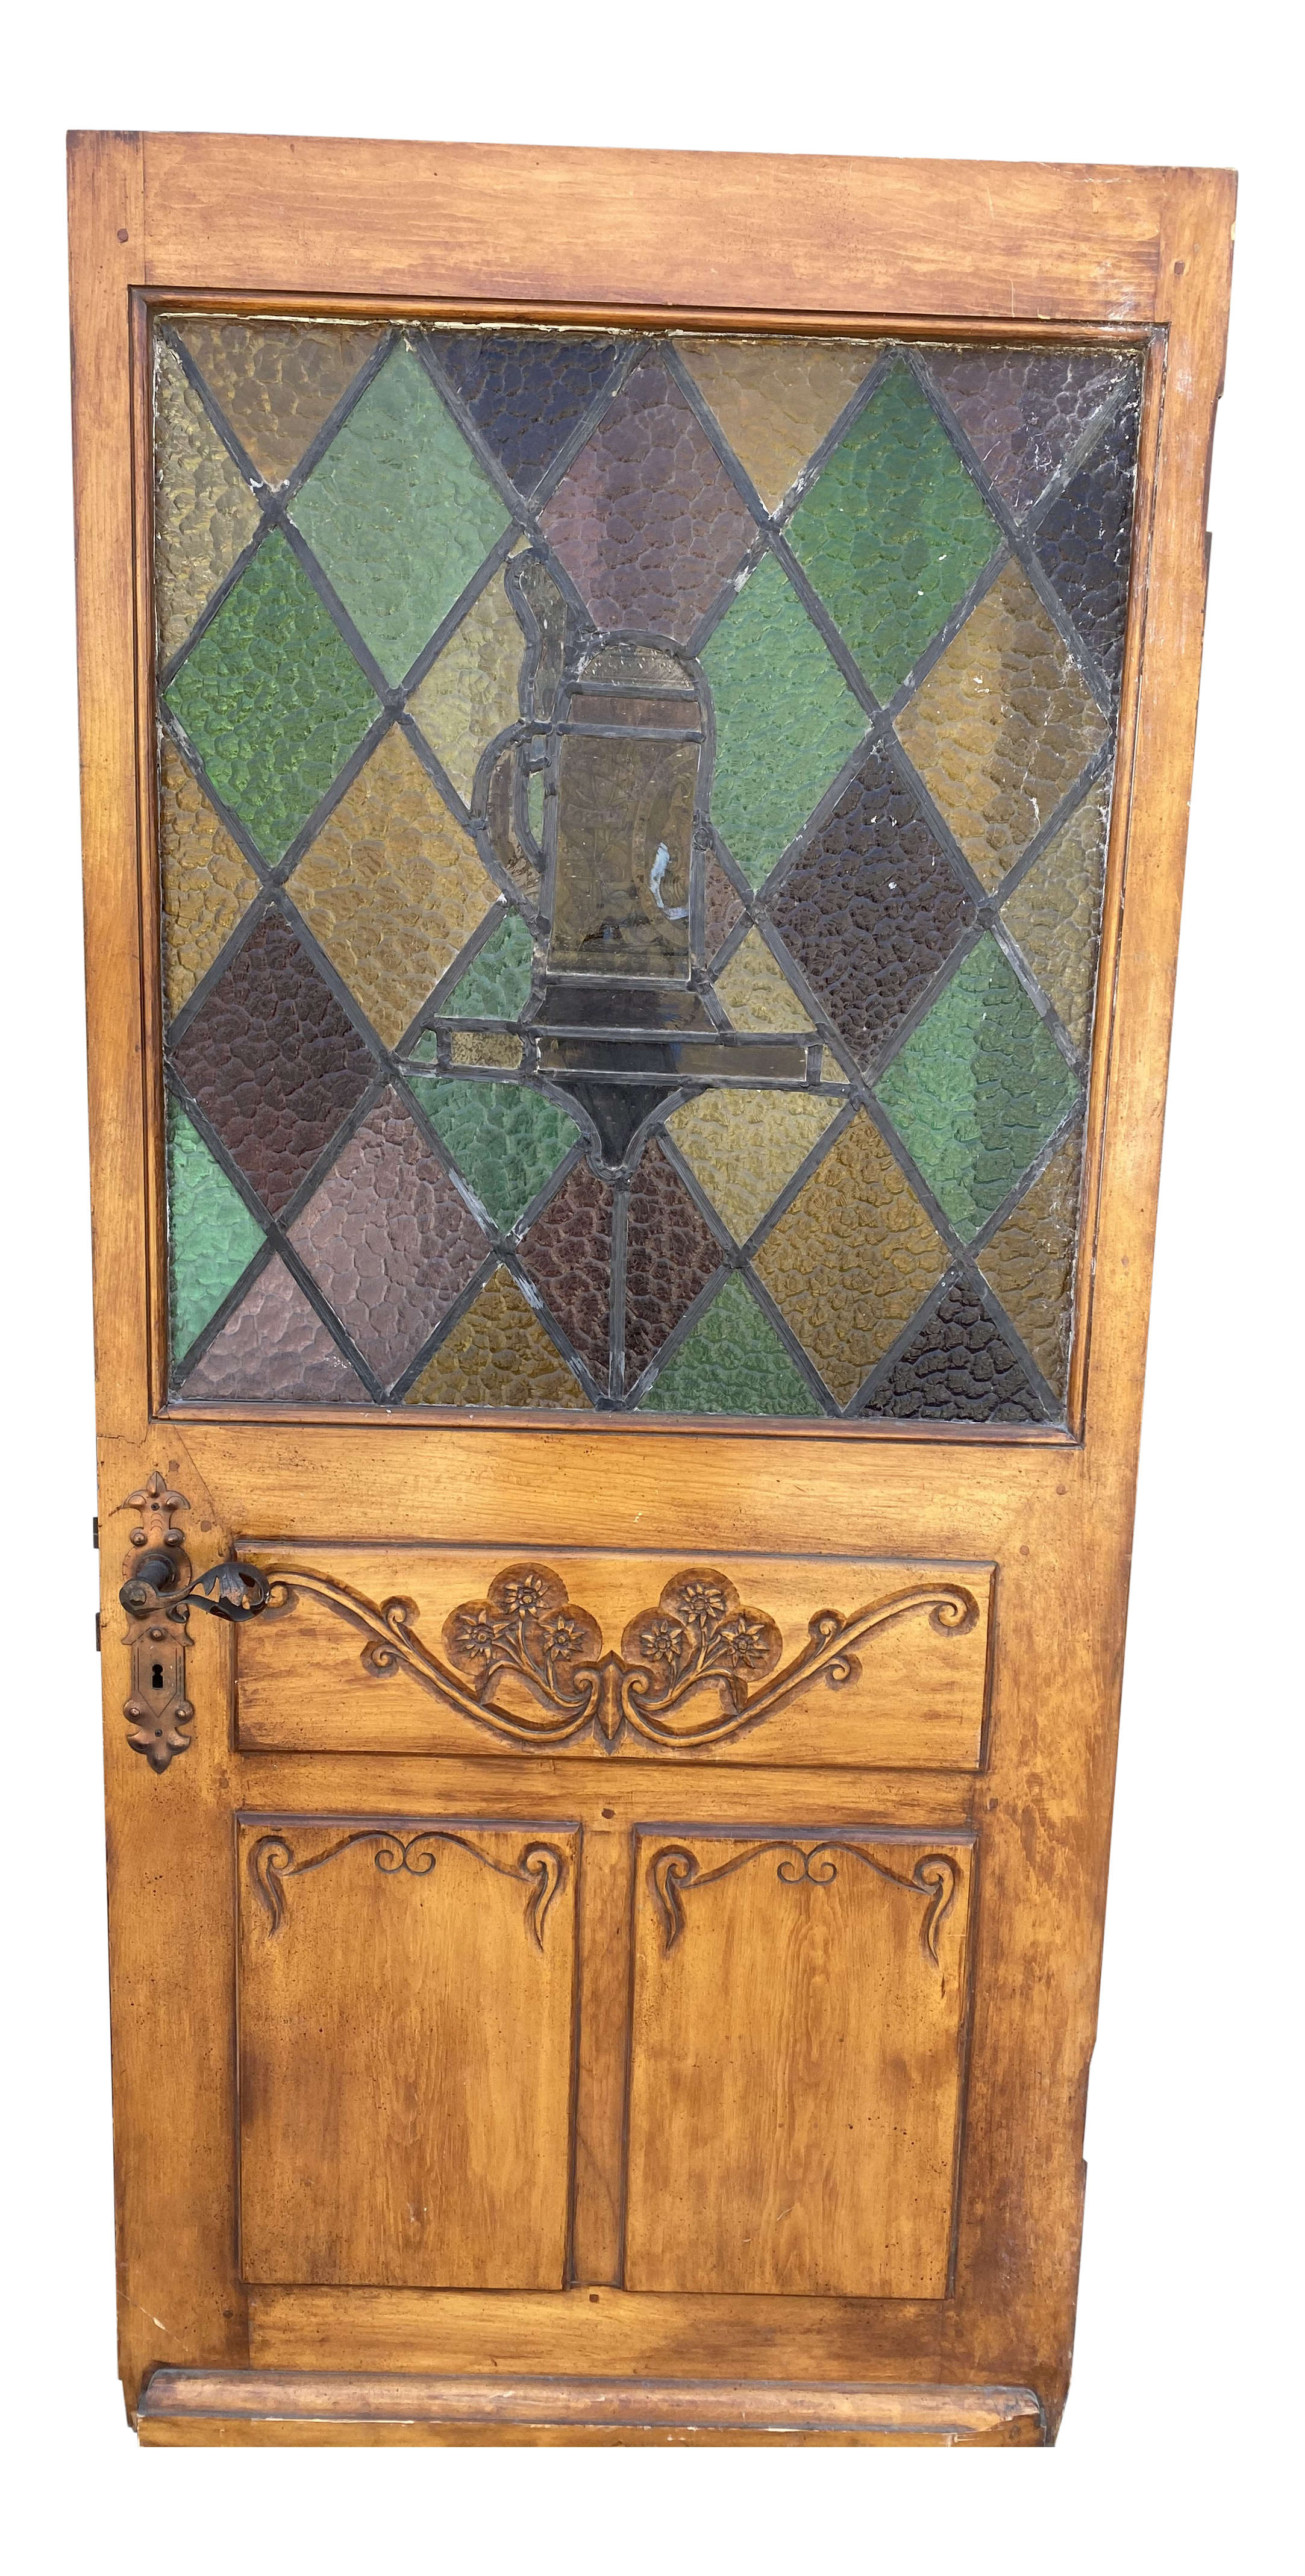 Spanish Revival Stained Glass Front Door With Carved Wood Chairish